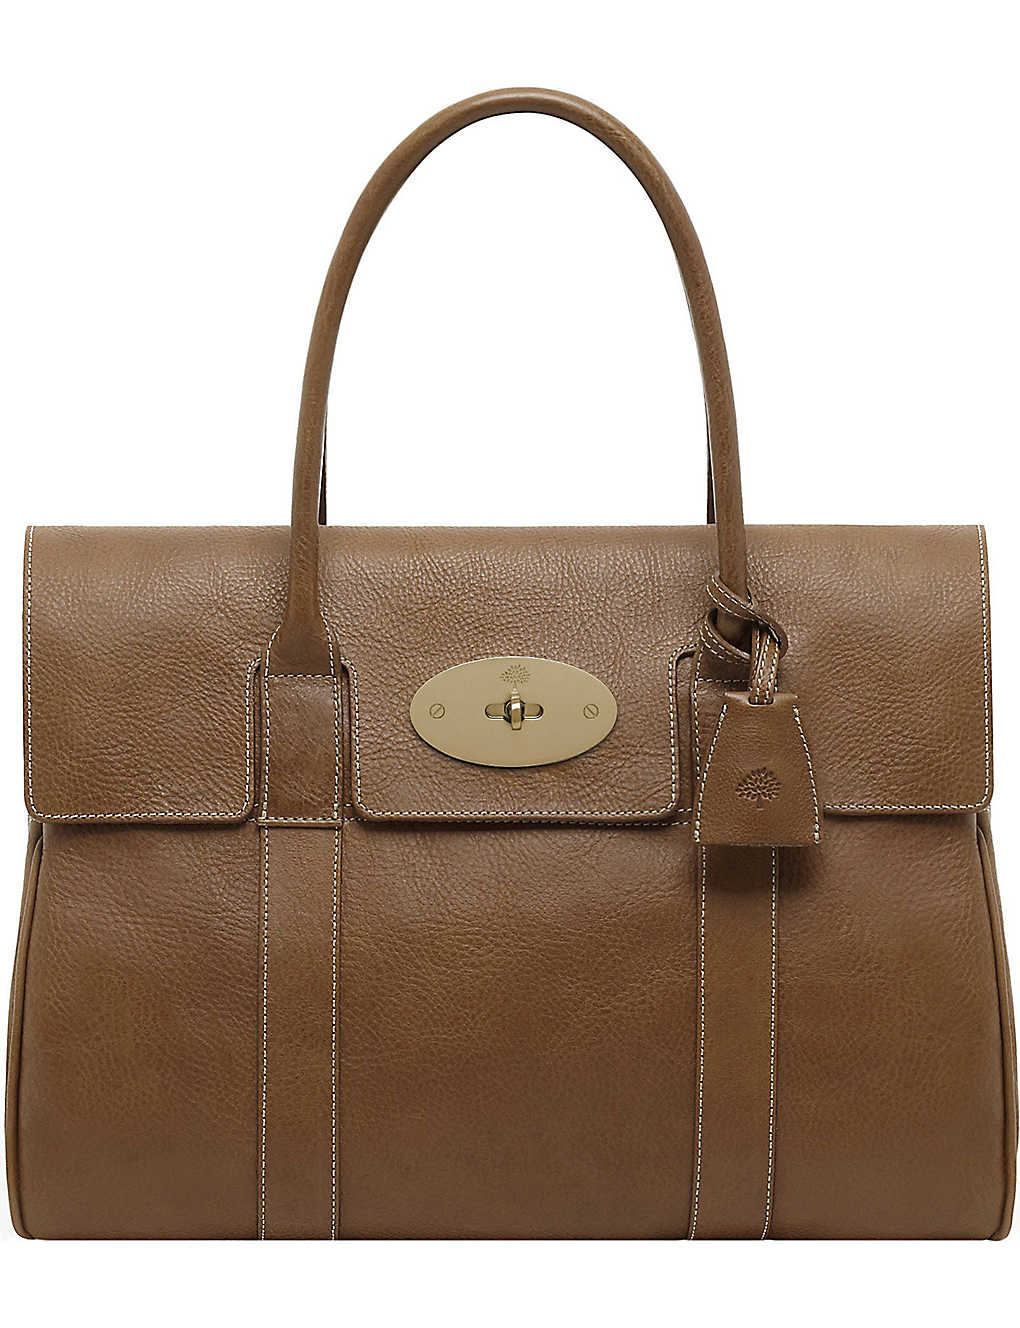 MULBERRY - Bayswater grained-leather tote  d4cde0882d7f1